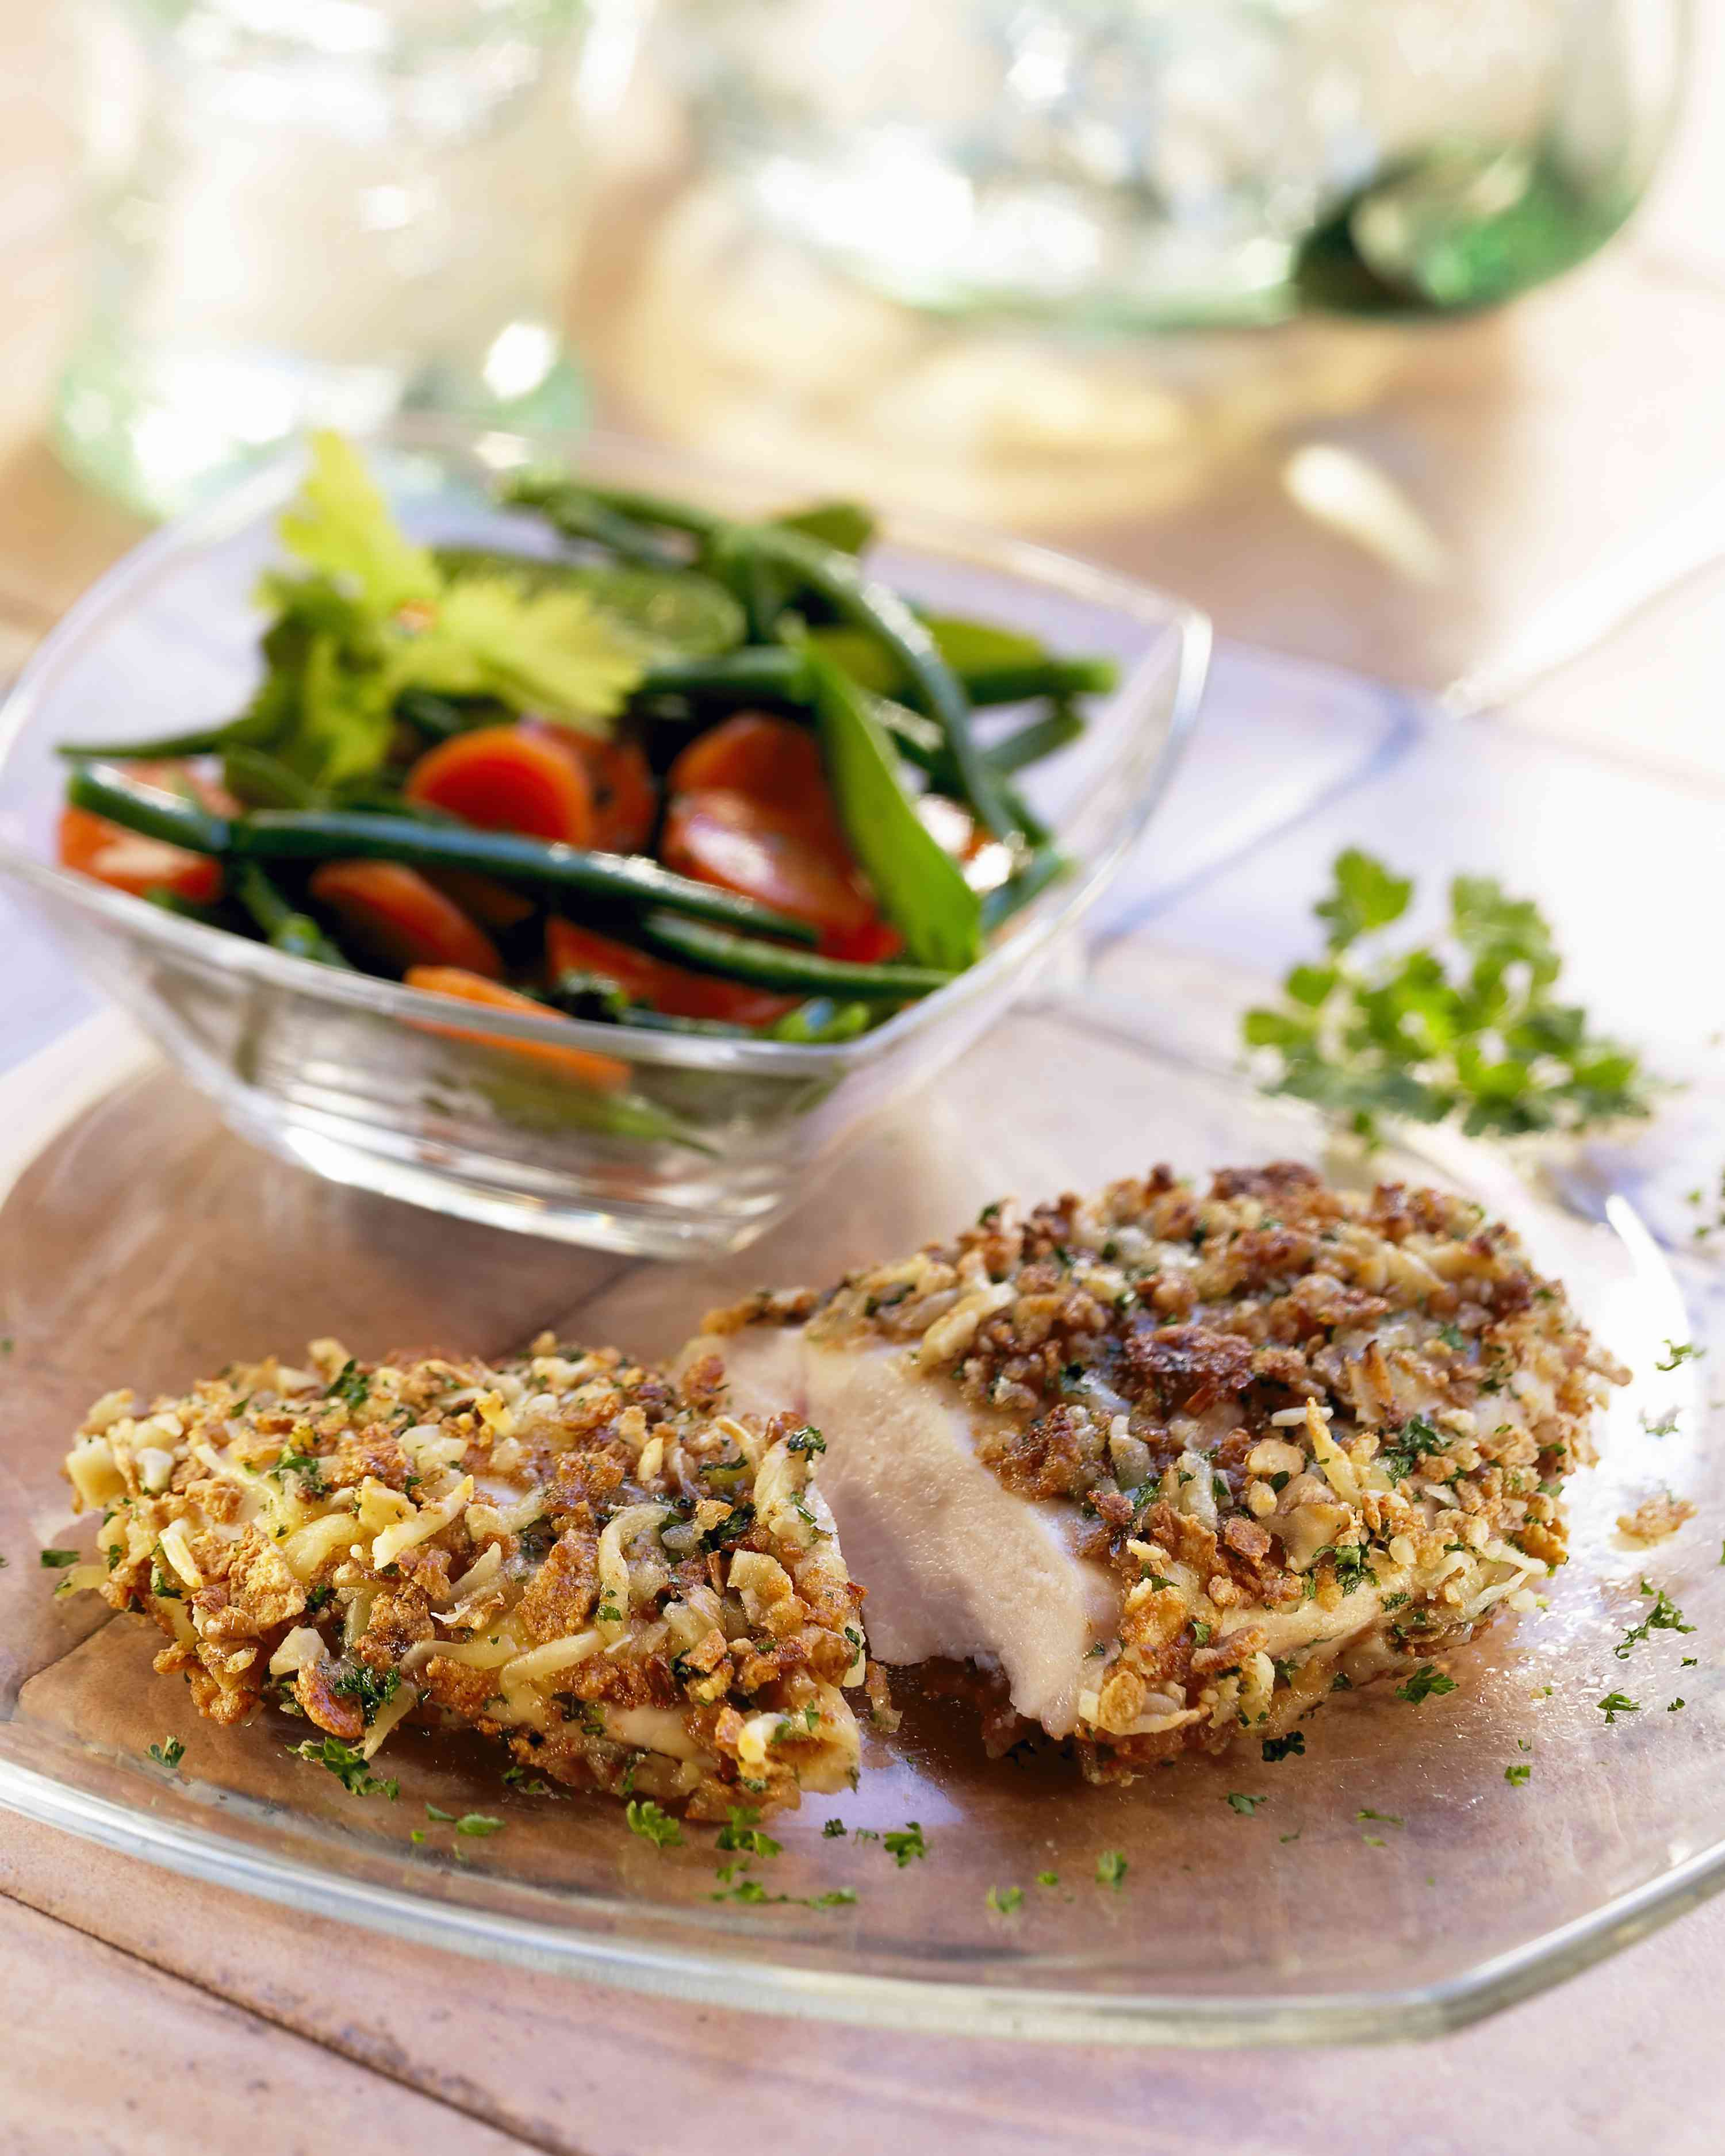 Crispy Ranch Chicken and side salad